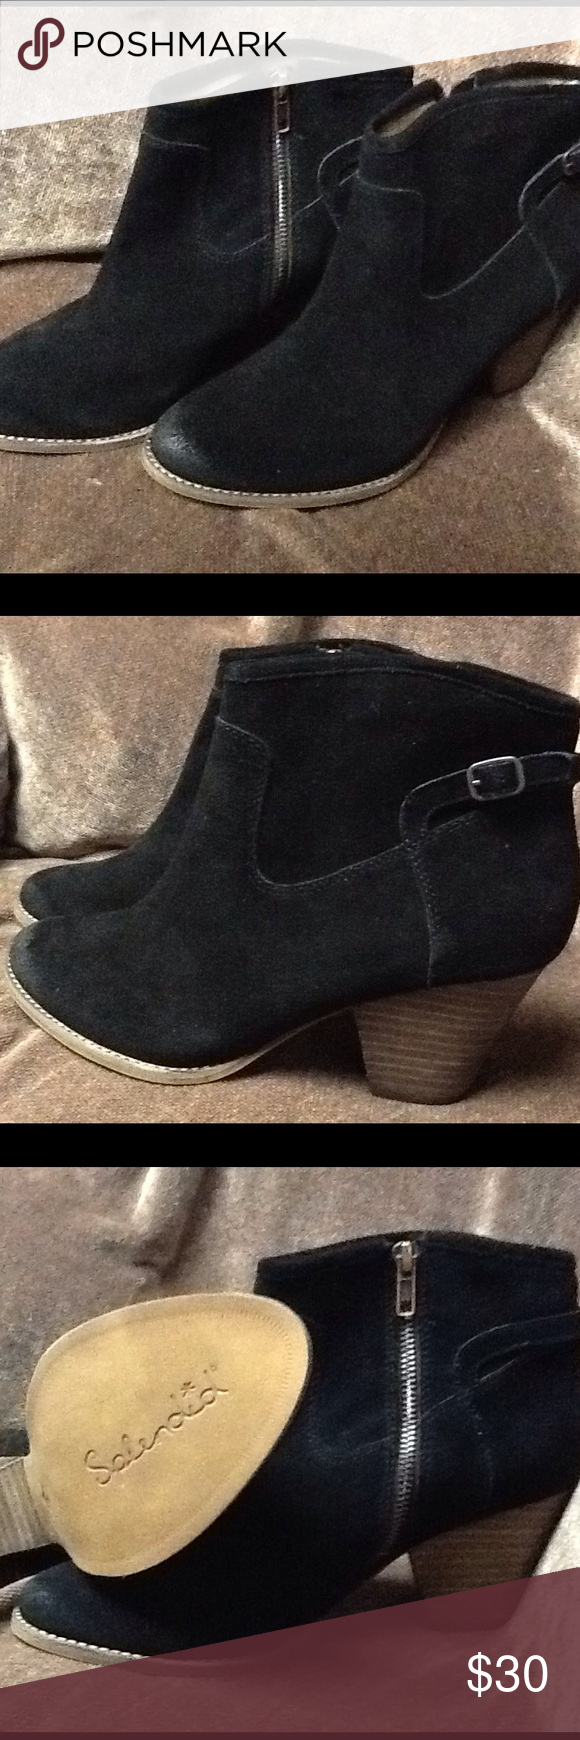 Black Suede Ankle Boots Made by Splendid with the style name of Rebekha. Brand new in original box. Splendid Shoes Ankle Boots & Booties